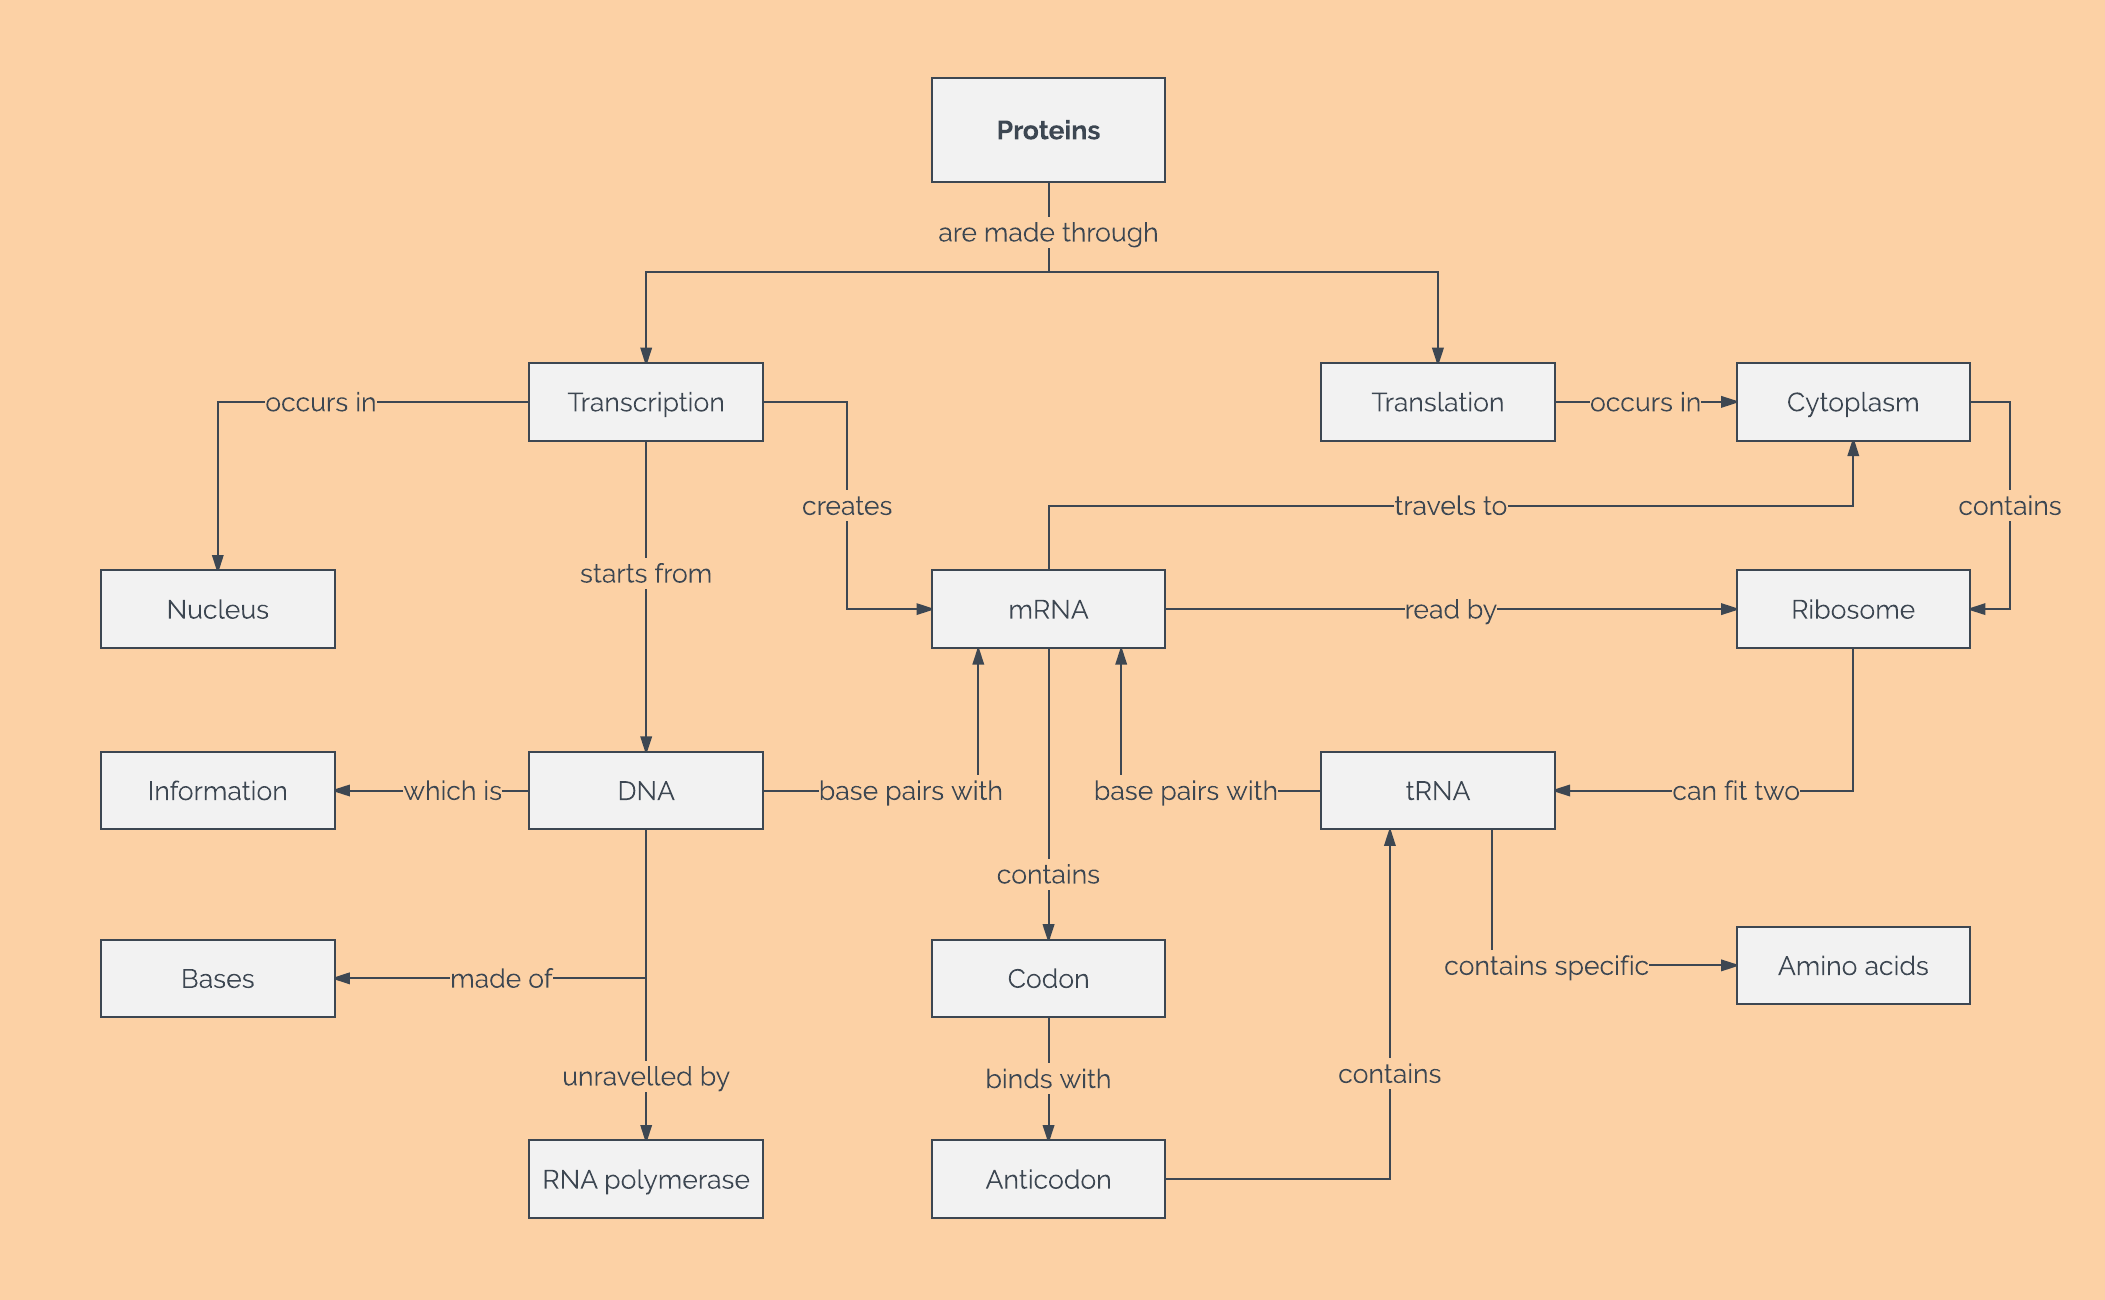 How To Make A Concept Map In Word Lucidchart Blog